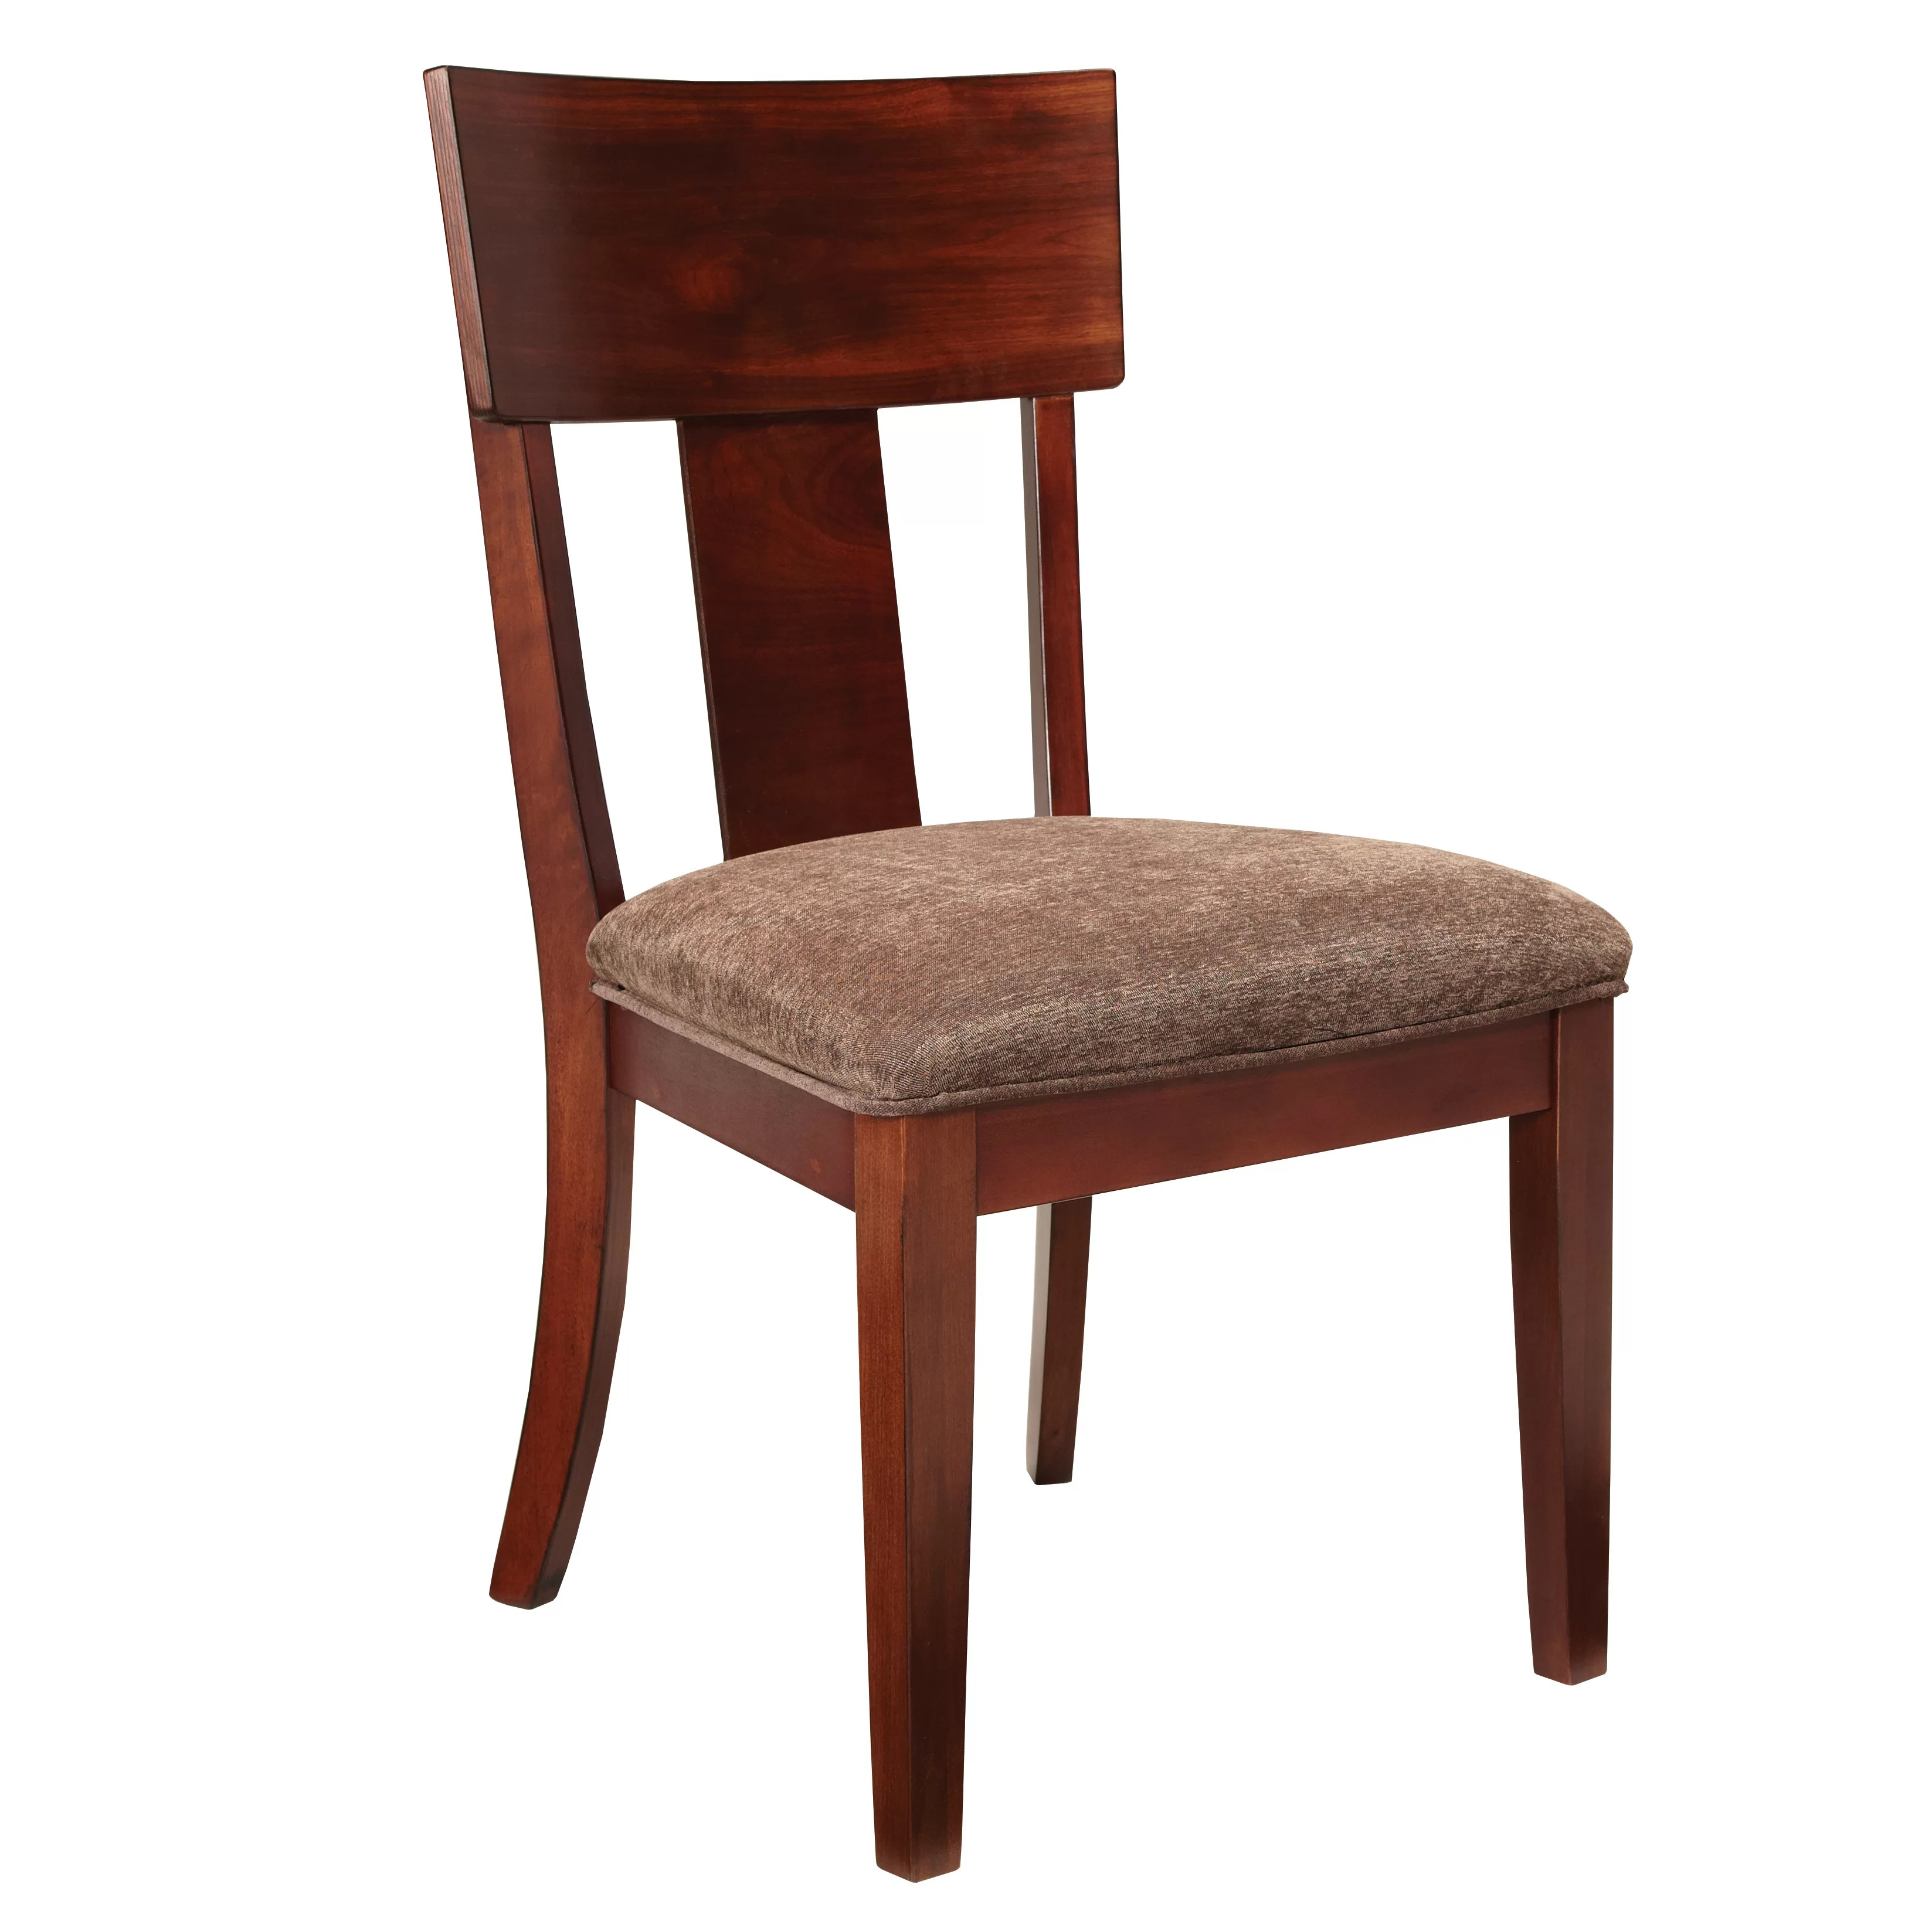 Studio Chairs Somerton Dwelling Studio Side Chair And Reviews Wayfair